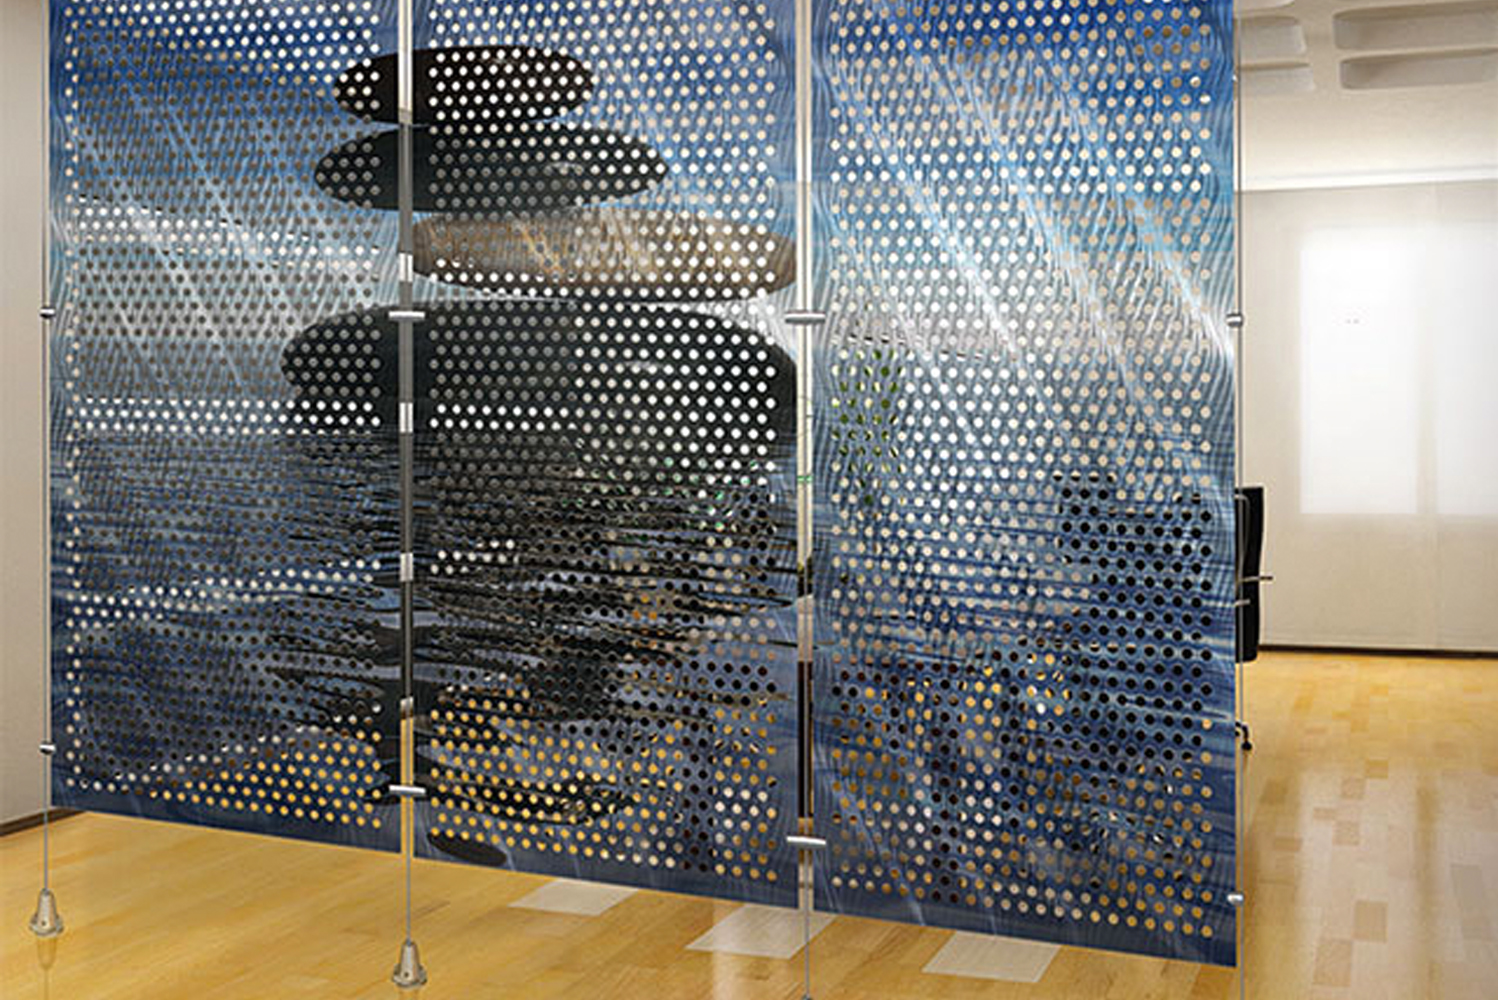 Metal options include solid core and perforated aluminum, along with a selection of Móz colors and gradients.